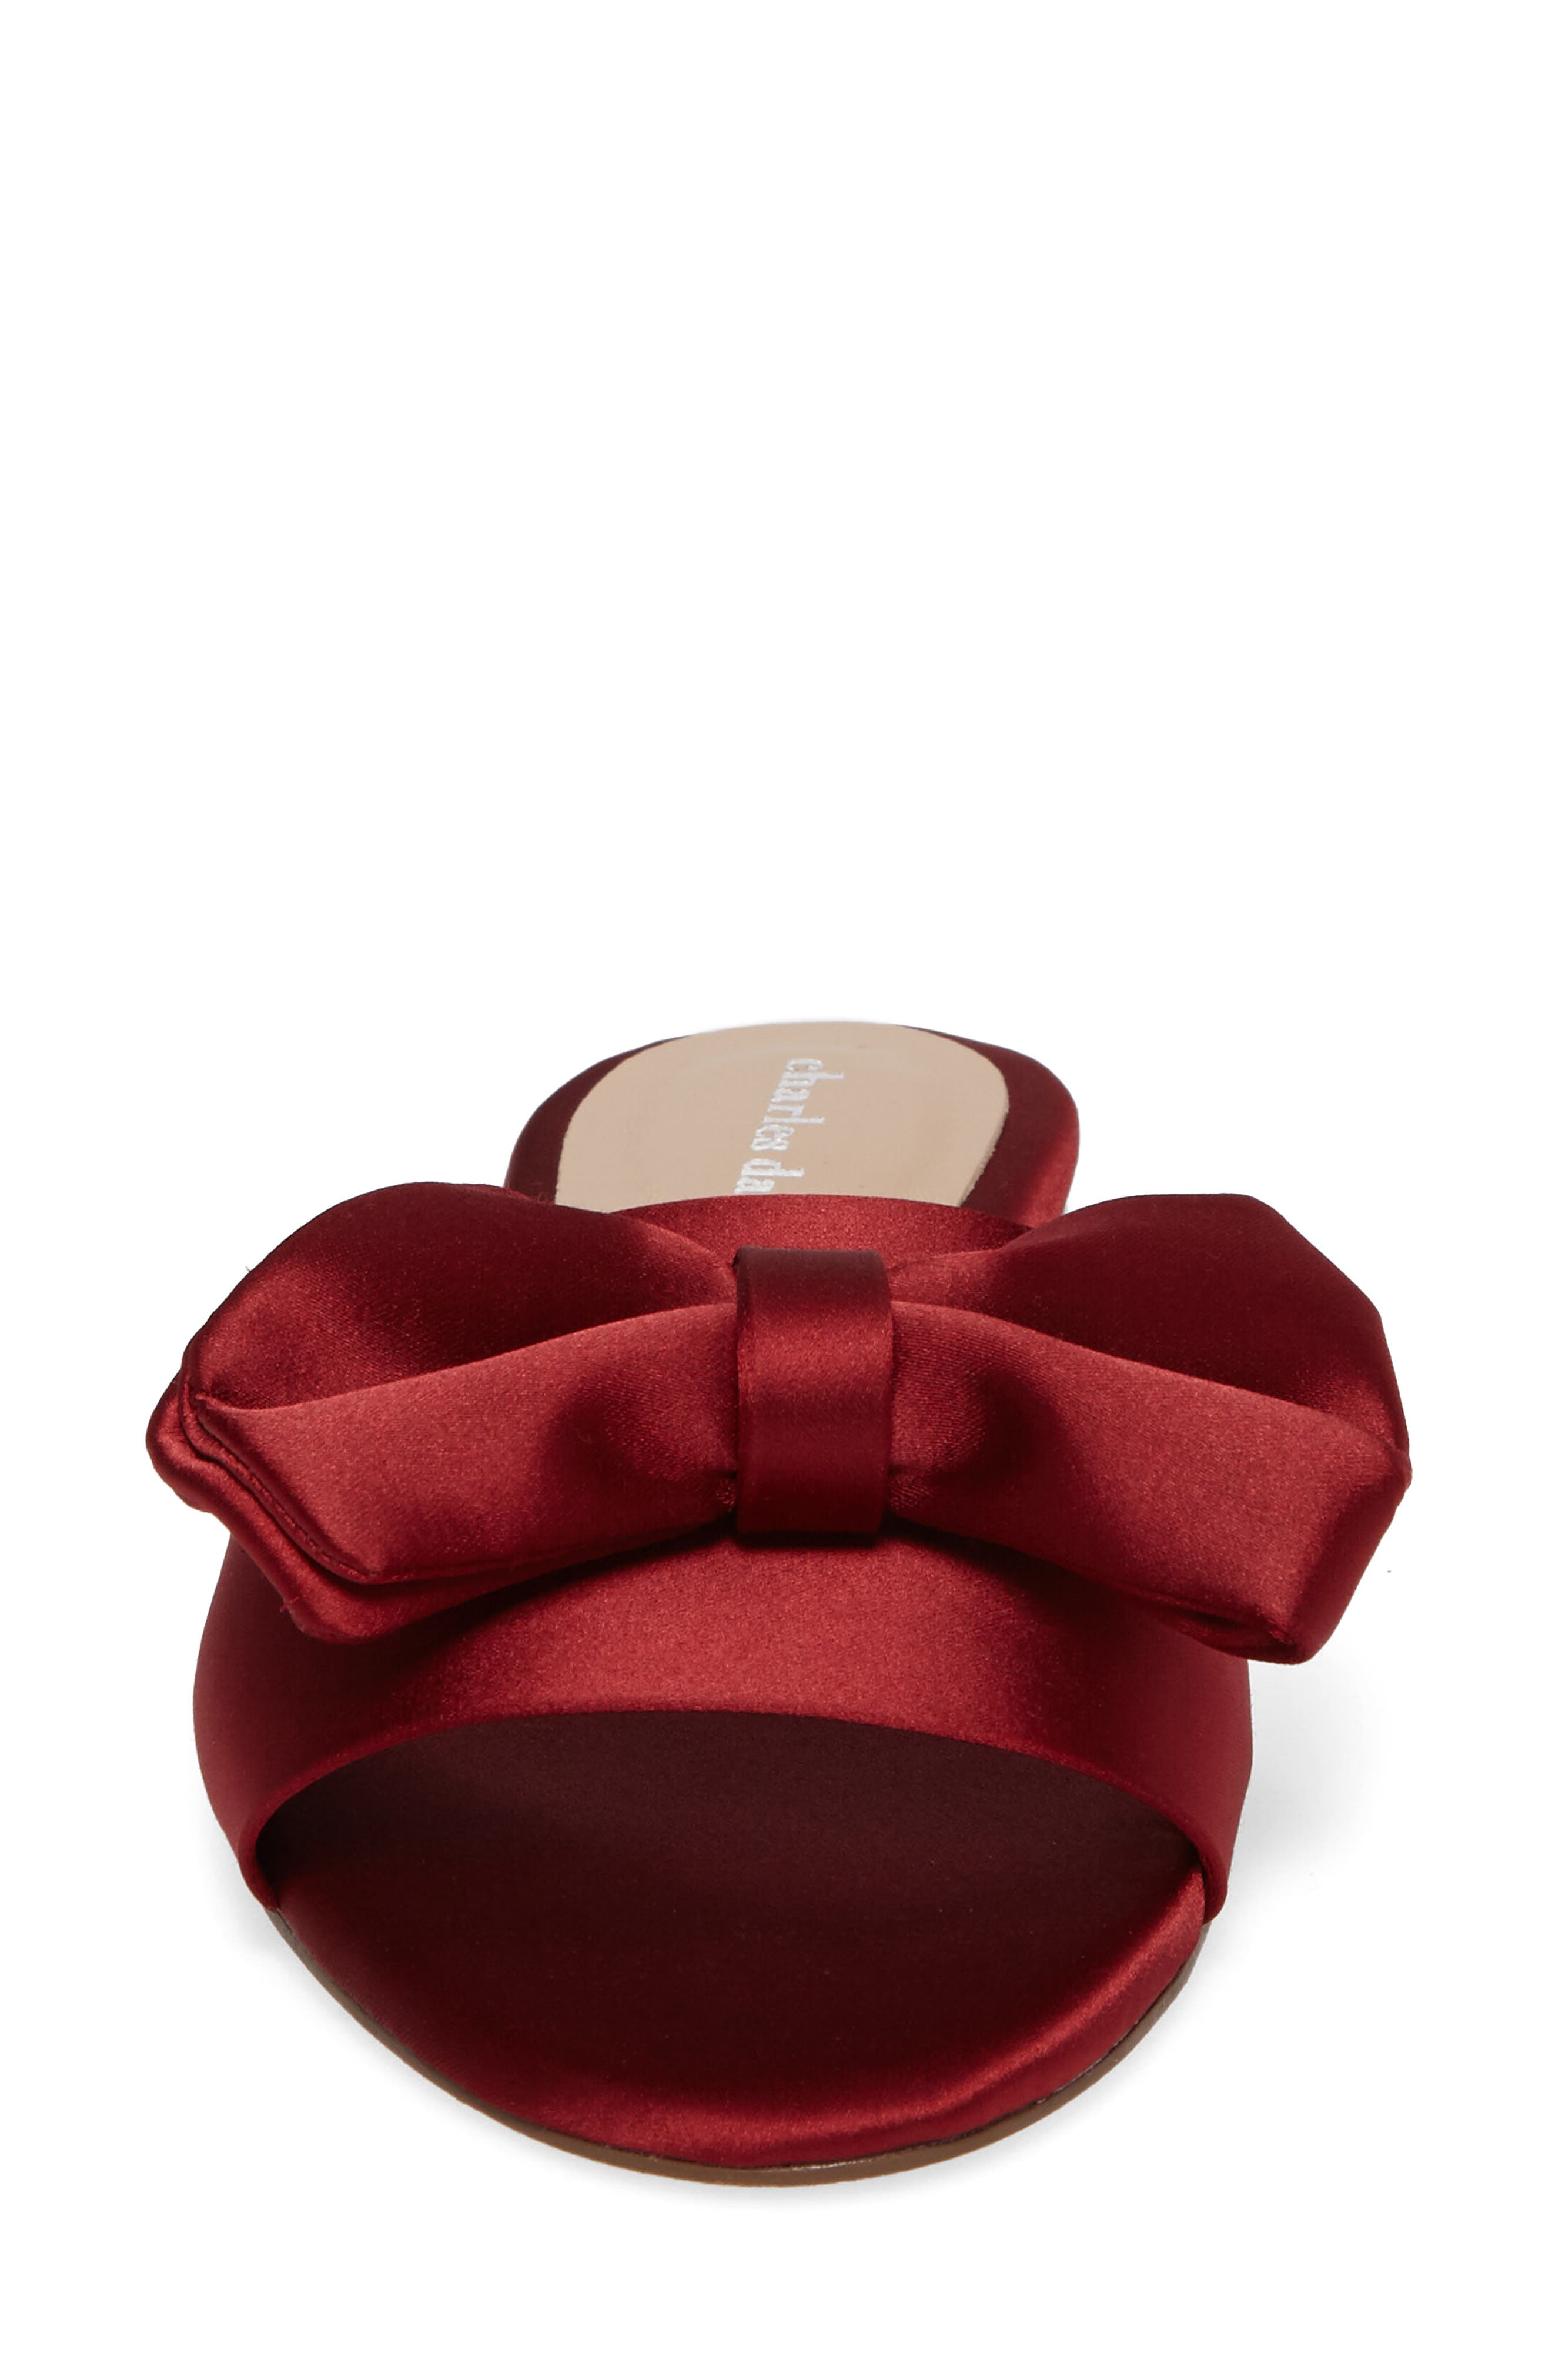 Bow Slide Sandal,                             Alternate thumbnail 4, color,                             Burgundy Satin